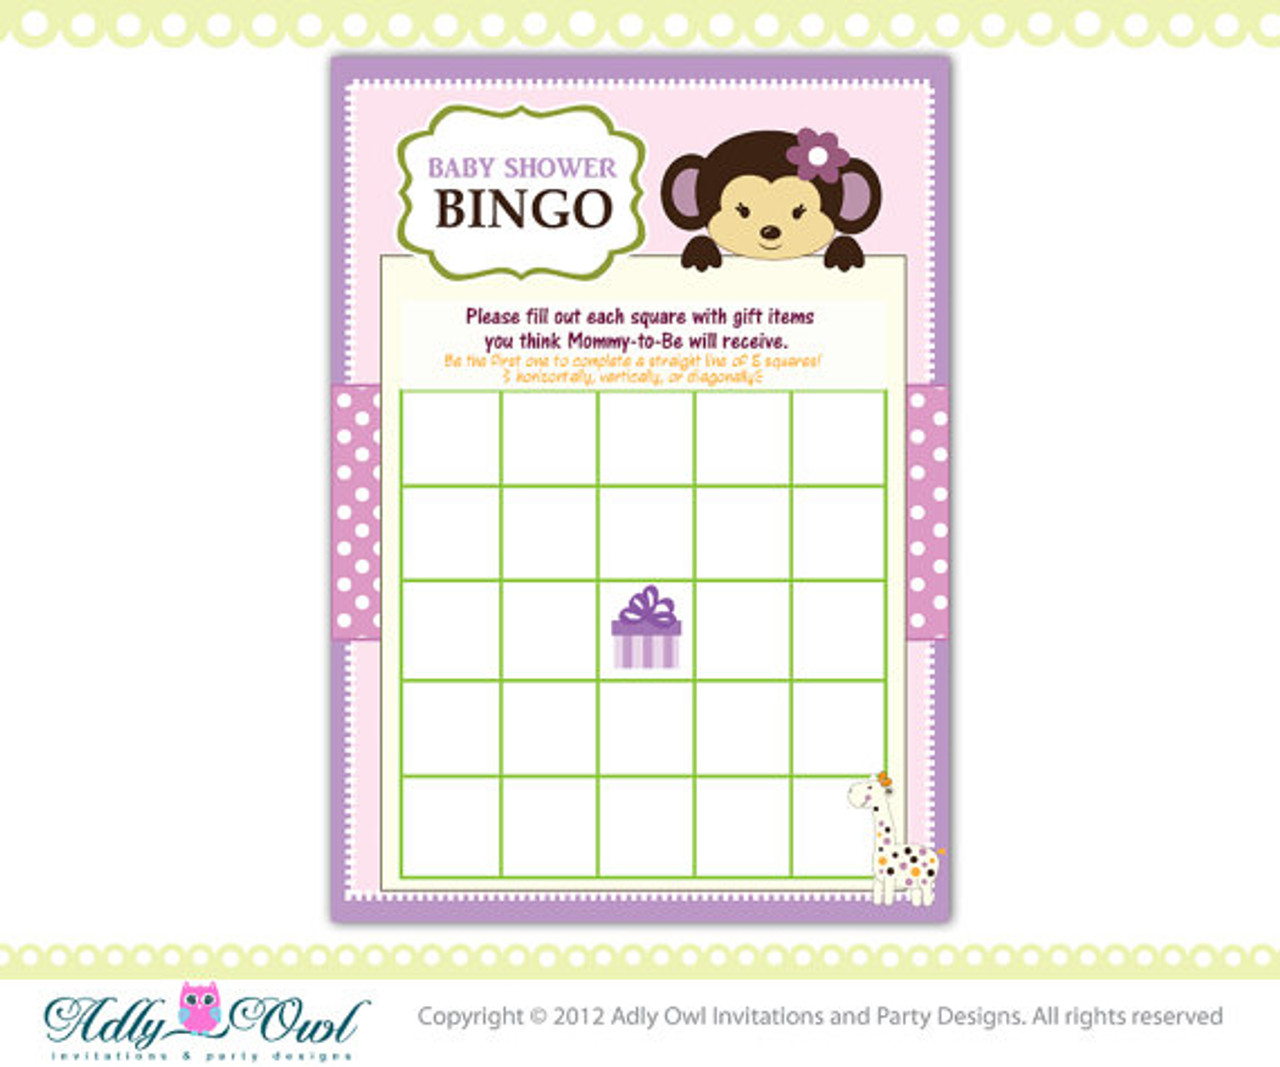 photograph regarding Baby Bingo Printable named CoCaLo Jacana Youngster Bingo Sport Printable Card for Little one Female Shower Do-it-yourself - Merely electronic history - on your own print